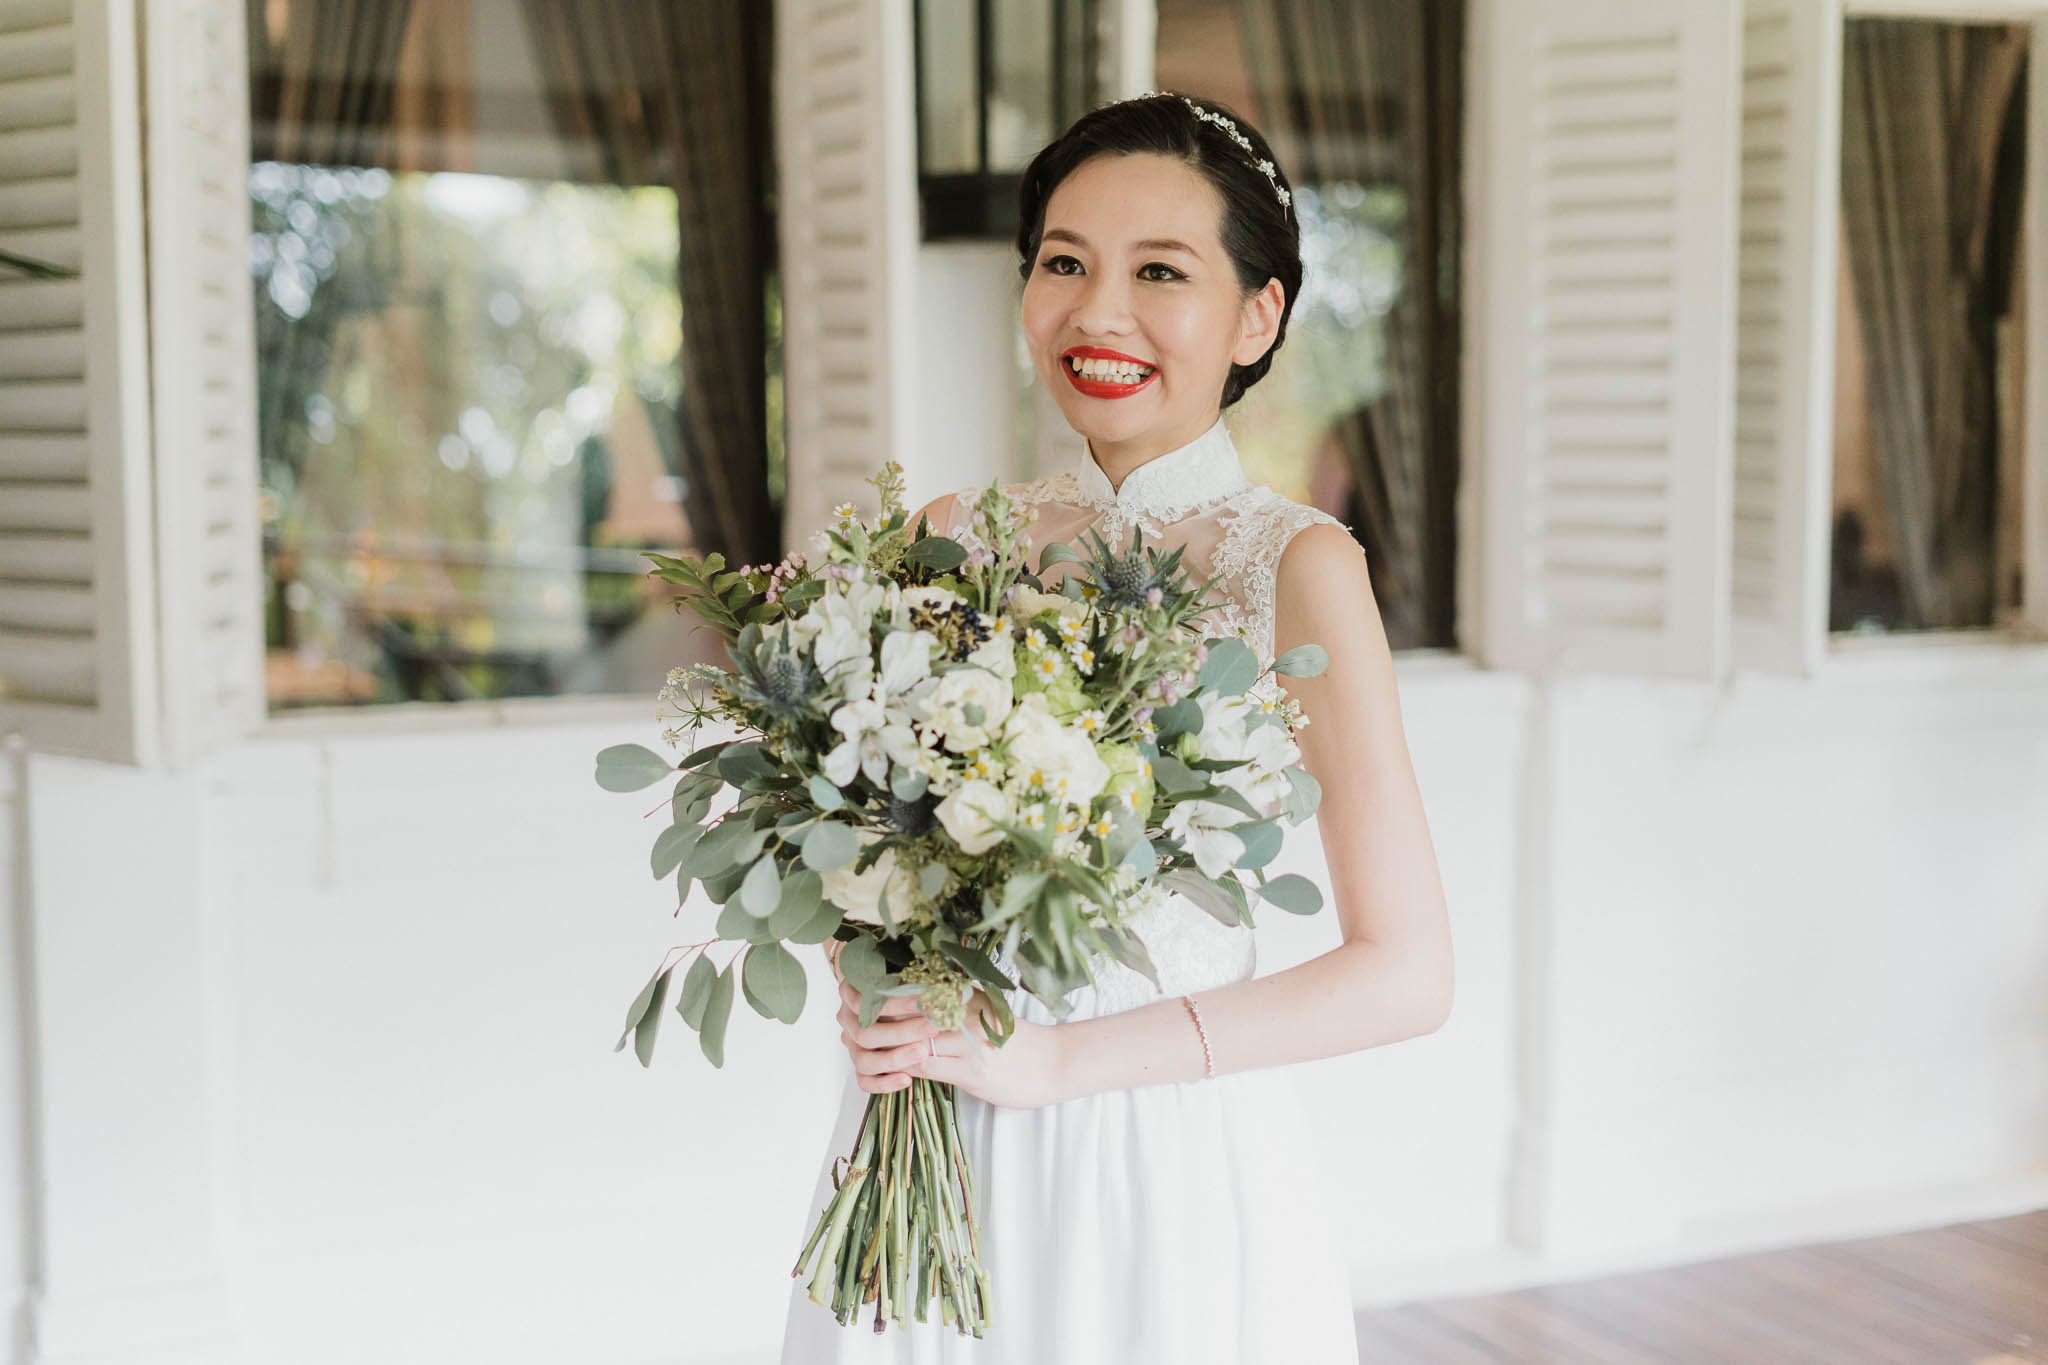 singapore-wedding-photographer-madethese-laremy-priscilla-wedding-072.jpg